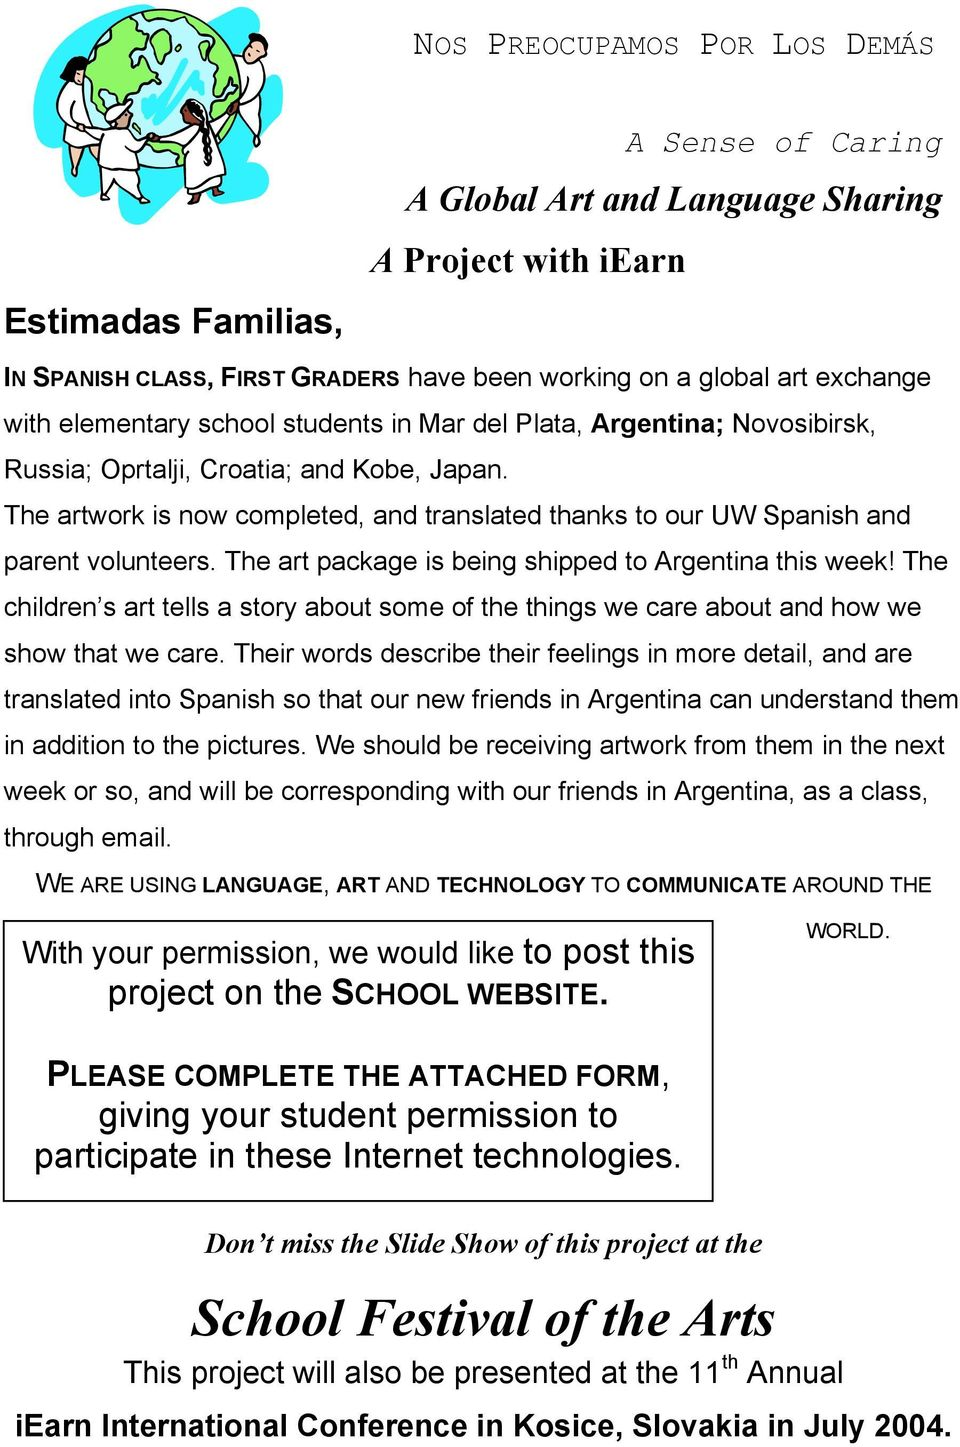 The artwork is now completed, and translated thanks to our UW Spanish and parent volunteers. The art package is being shipped to Argentina this week!